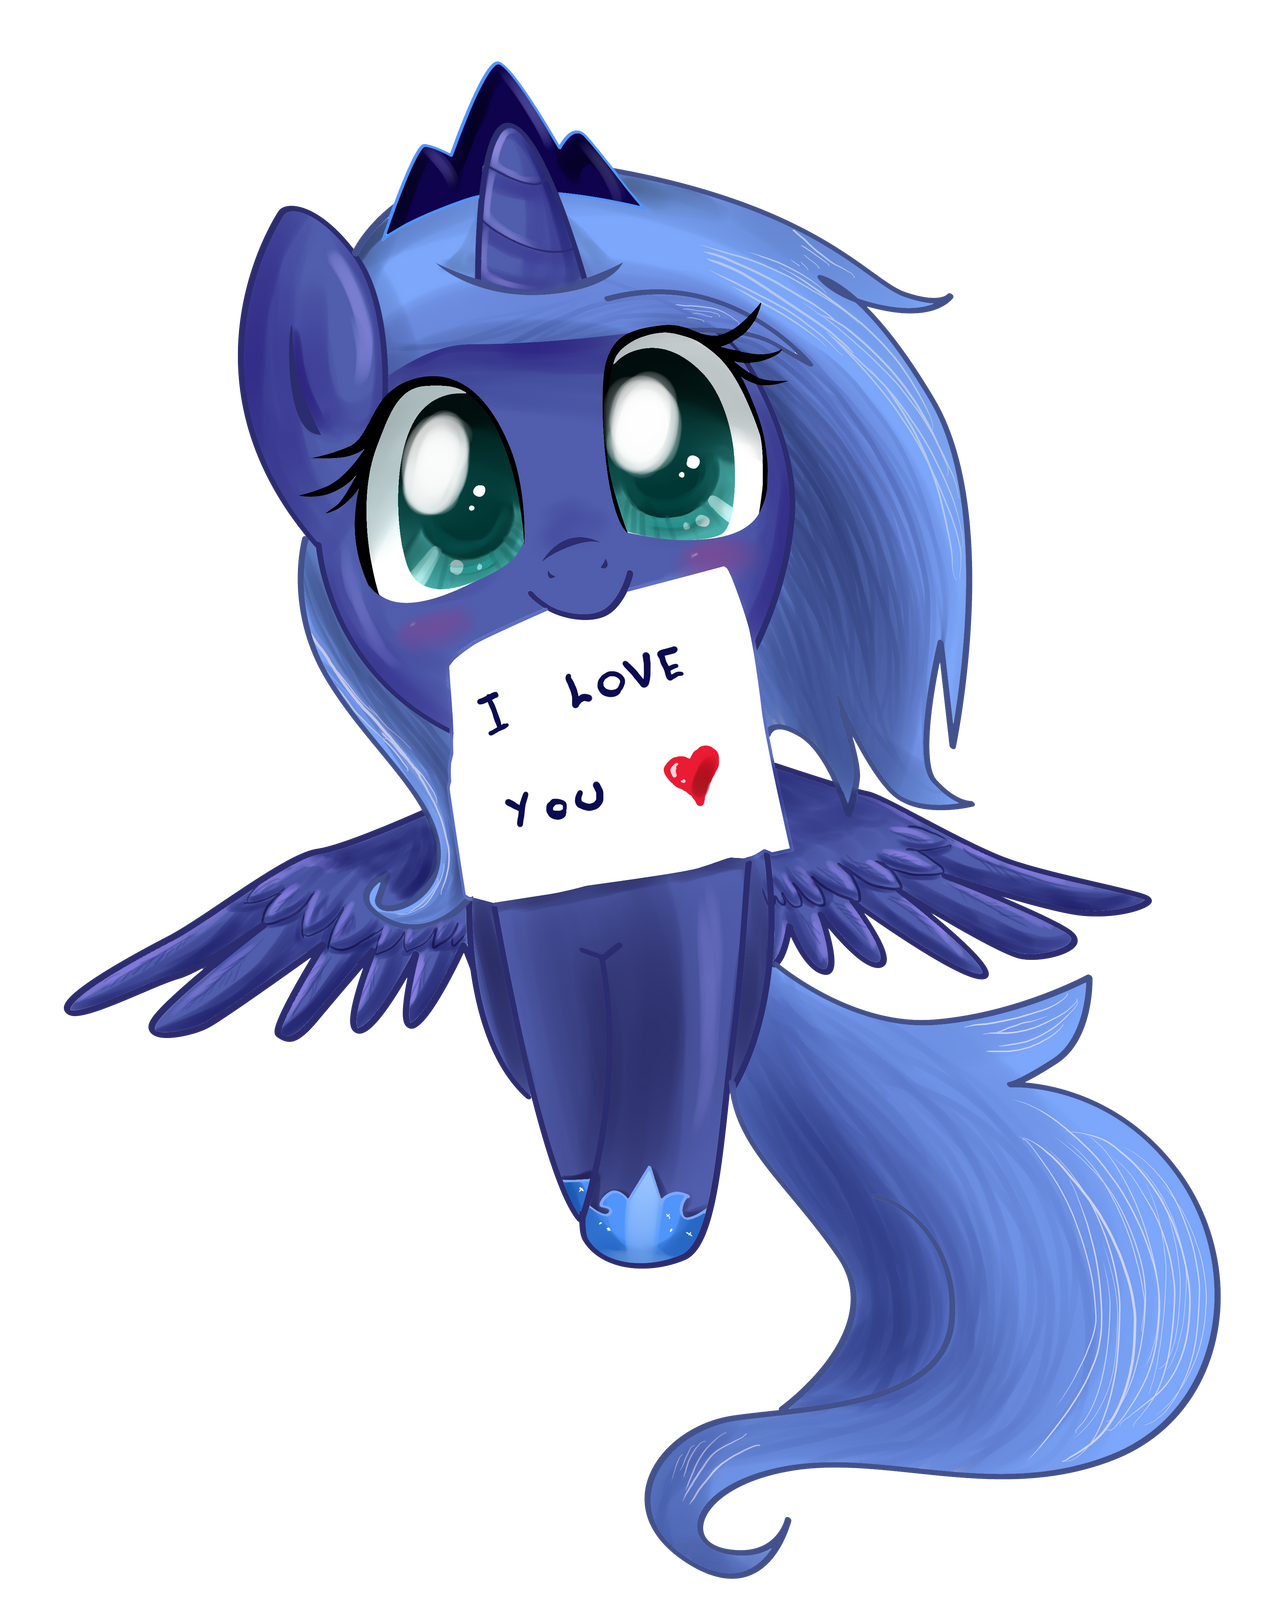 I love you by pridark